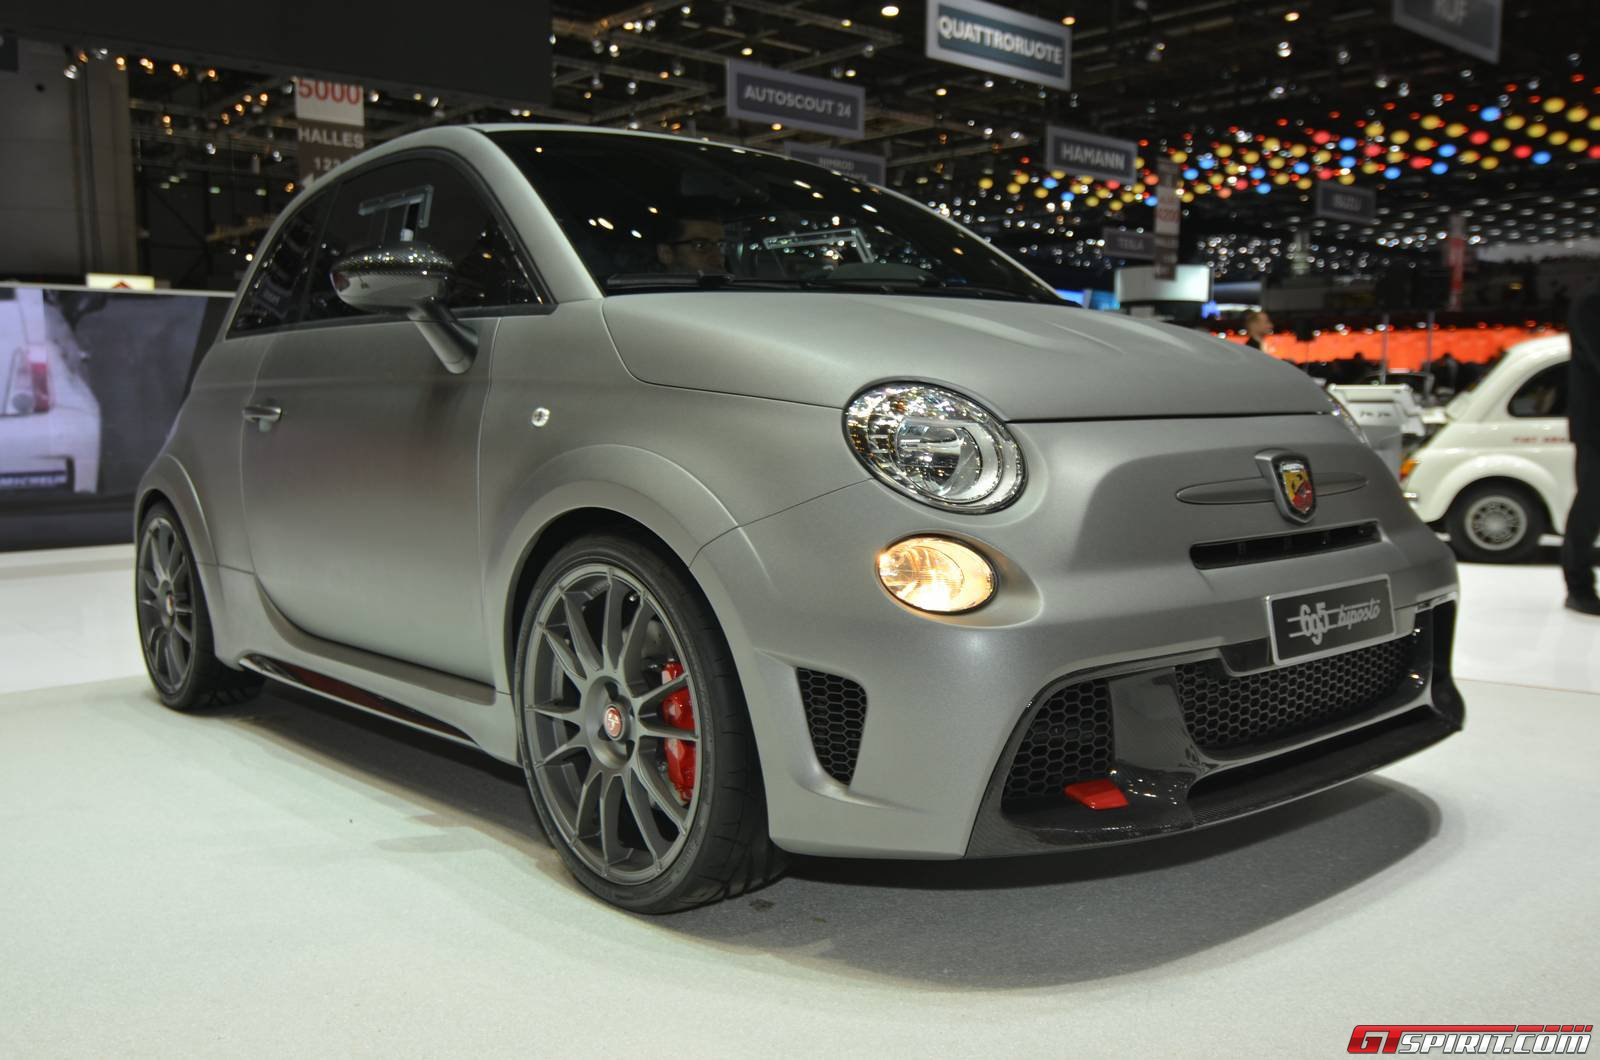 abarth 695 biposto named official gumball 3000 2014 car gtspirit. Black Bedroom Furniture Sets. Home Design Ideas